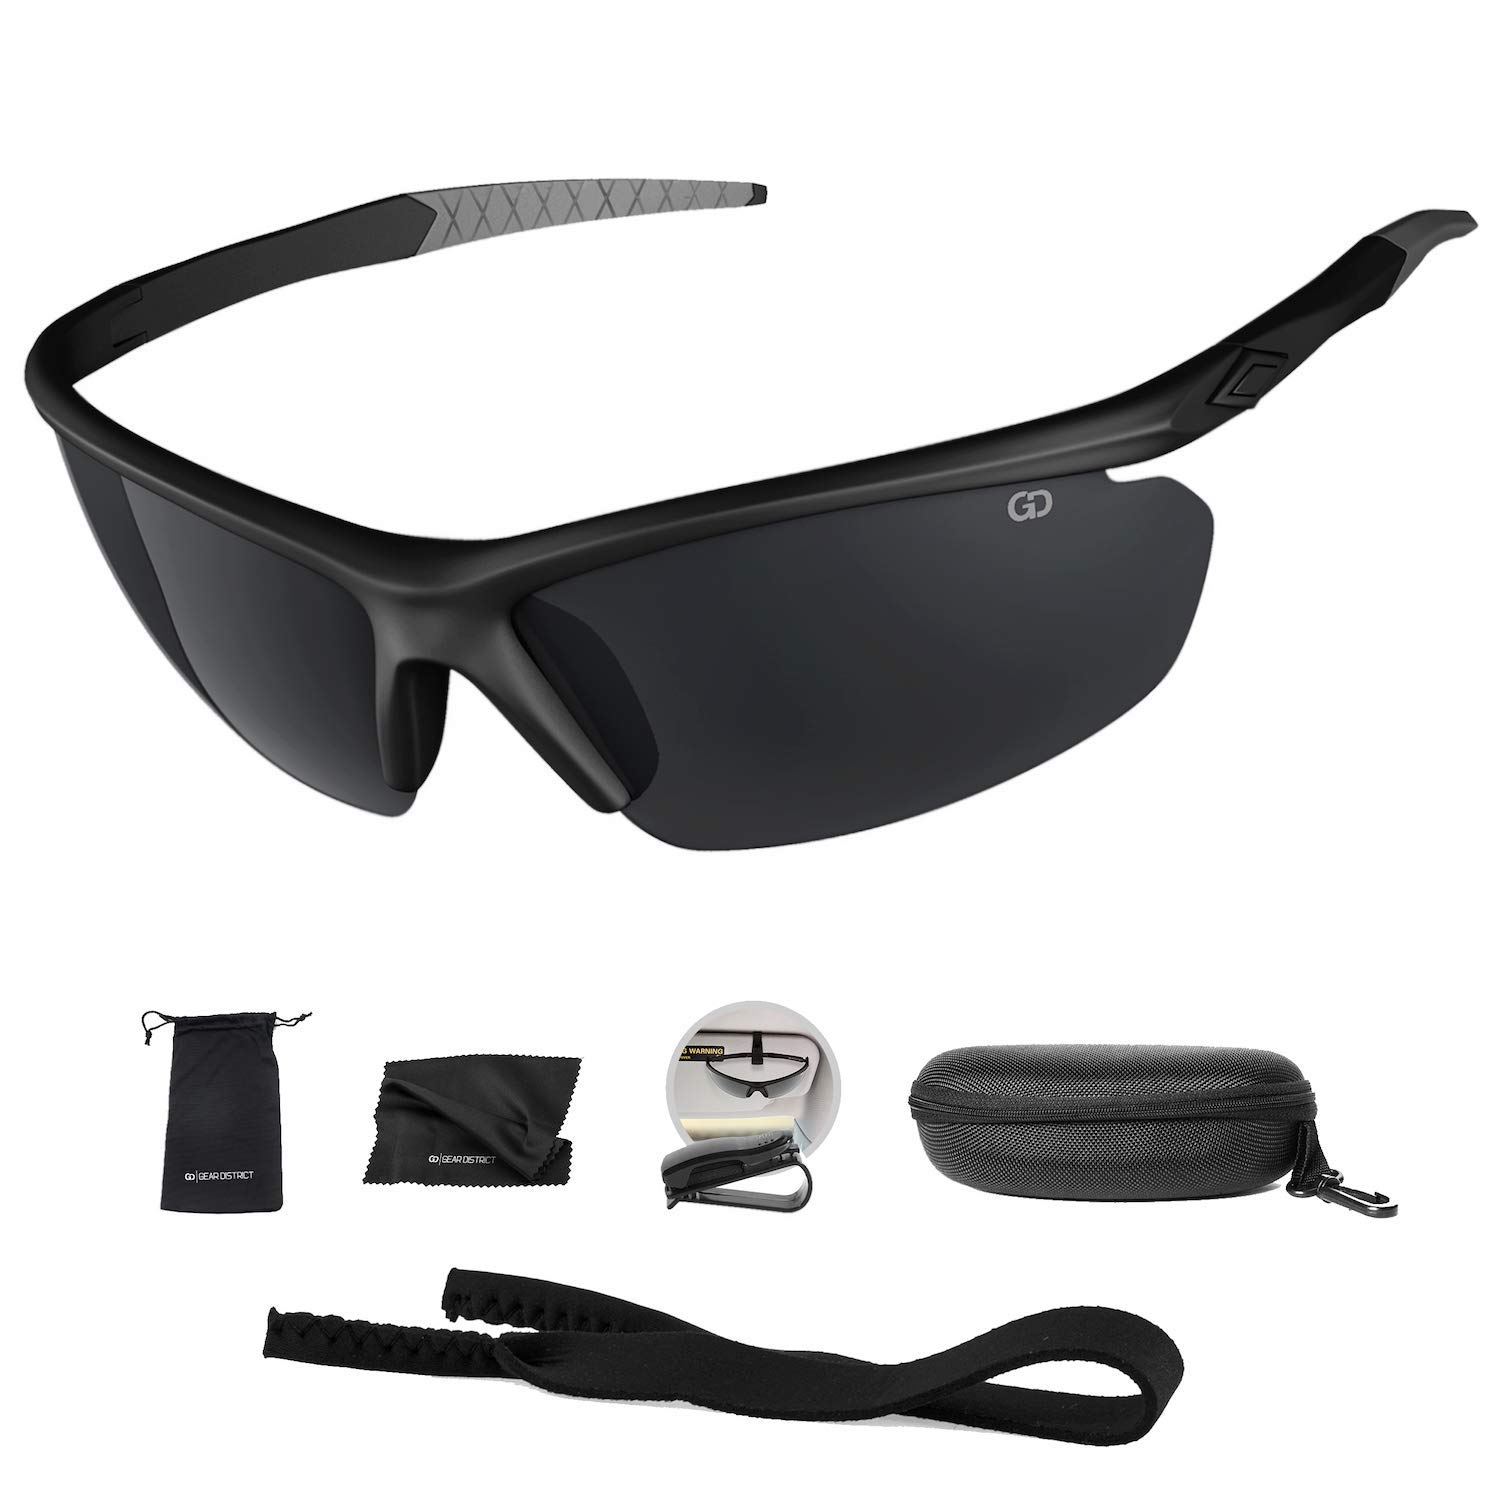 74f8a73b60 Polarized UV400 Sport Sunglasses Anti-Fog Ideal for Driving or Sports  Activity product image